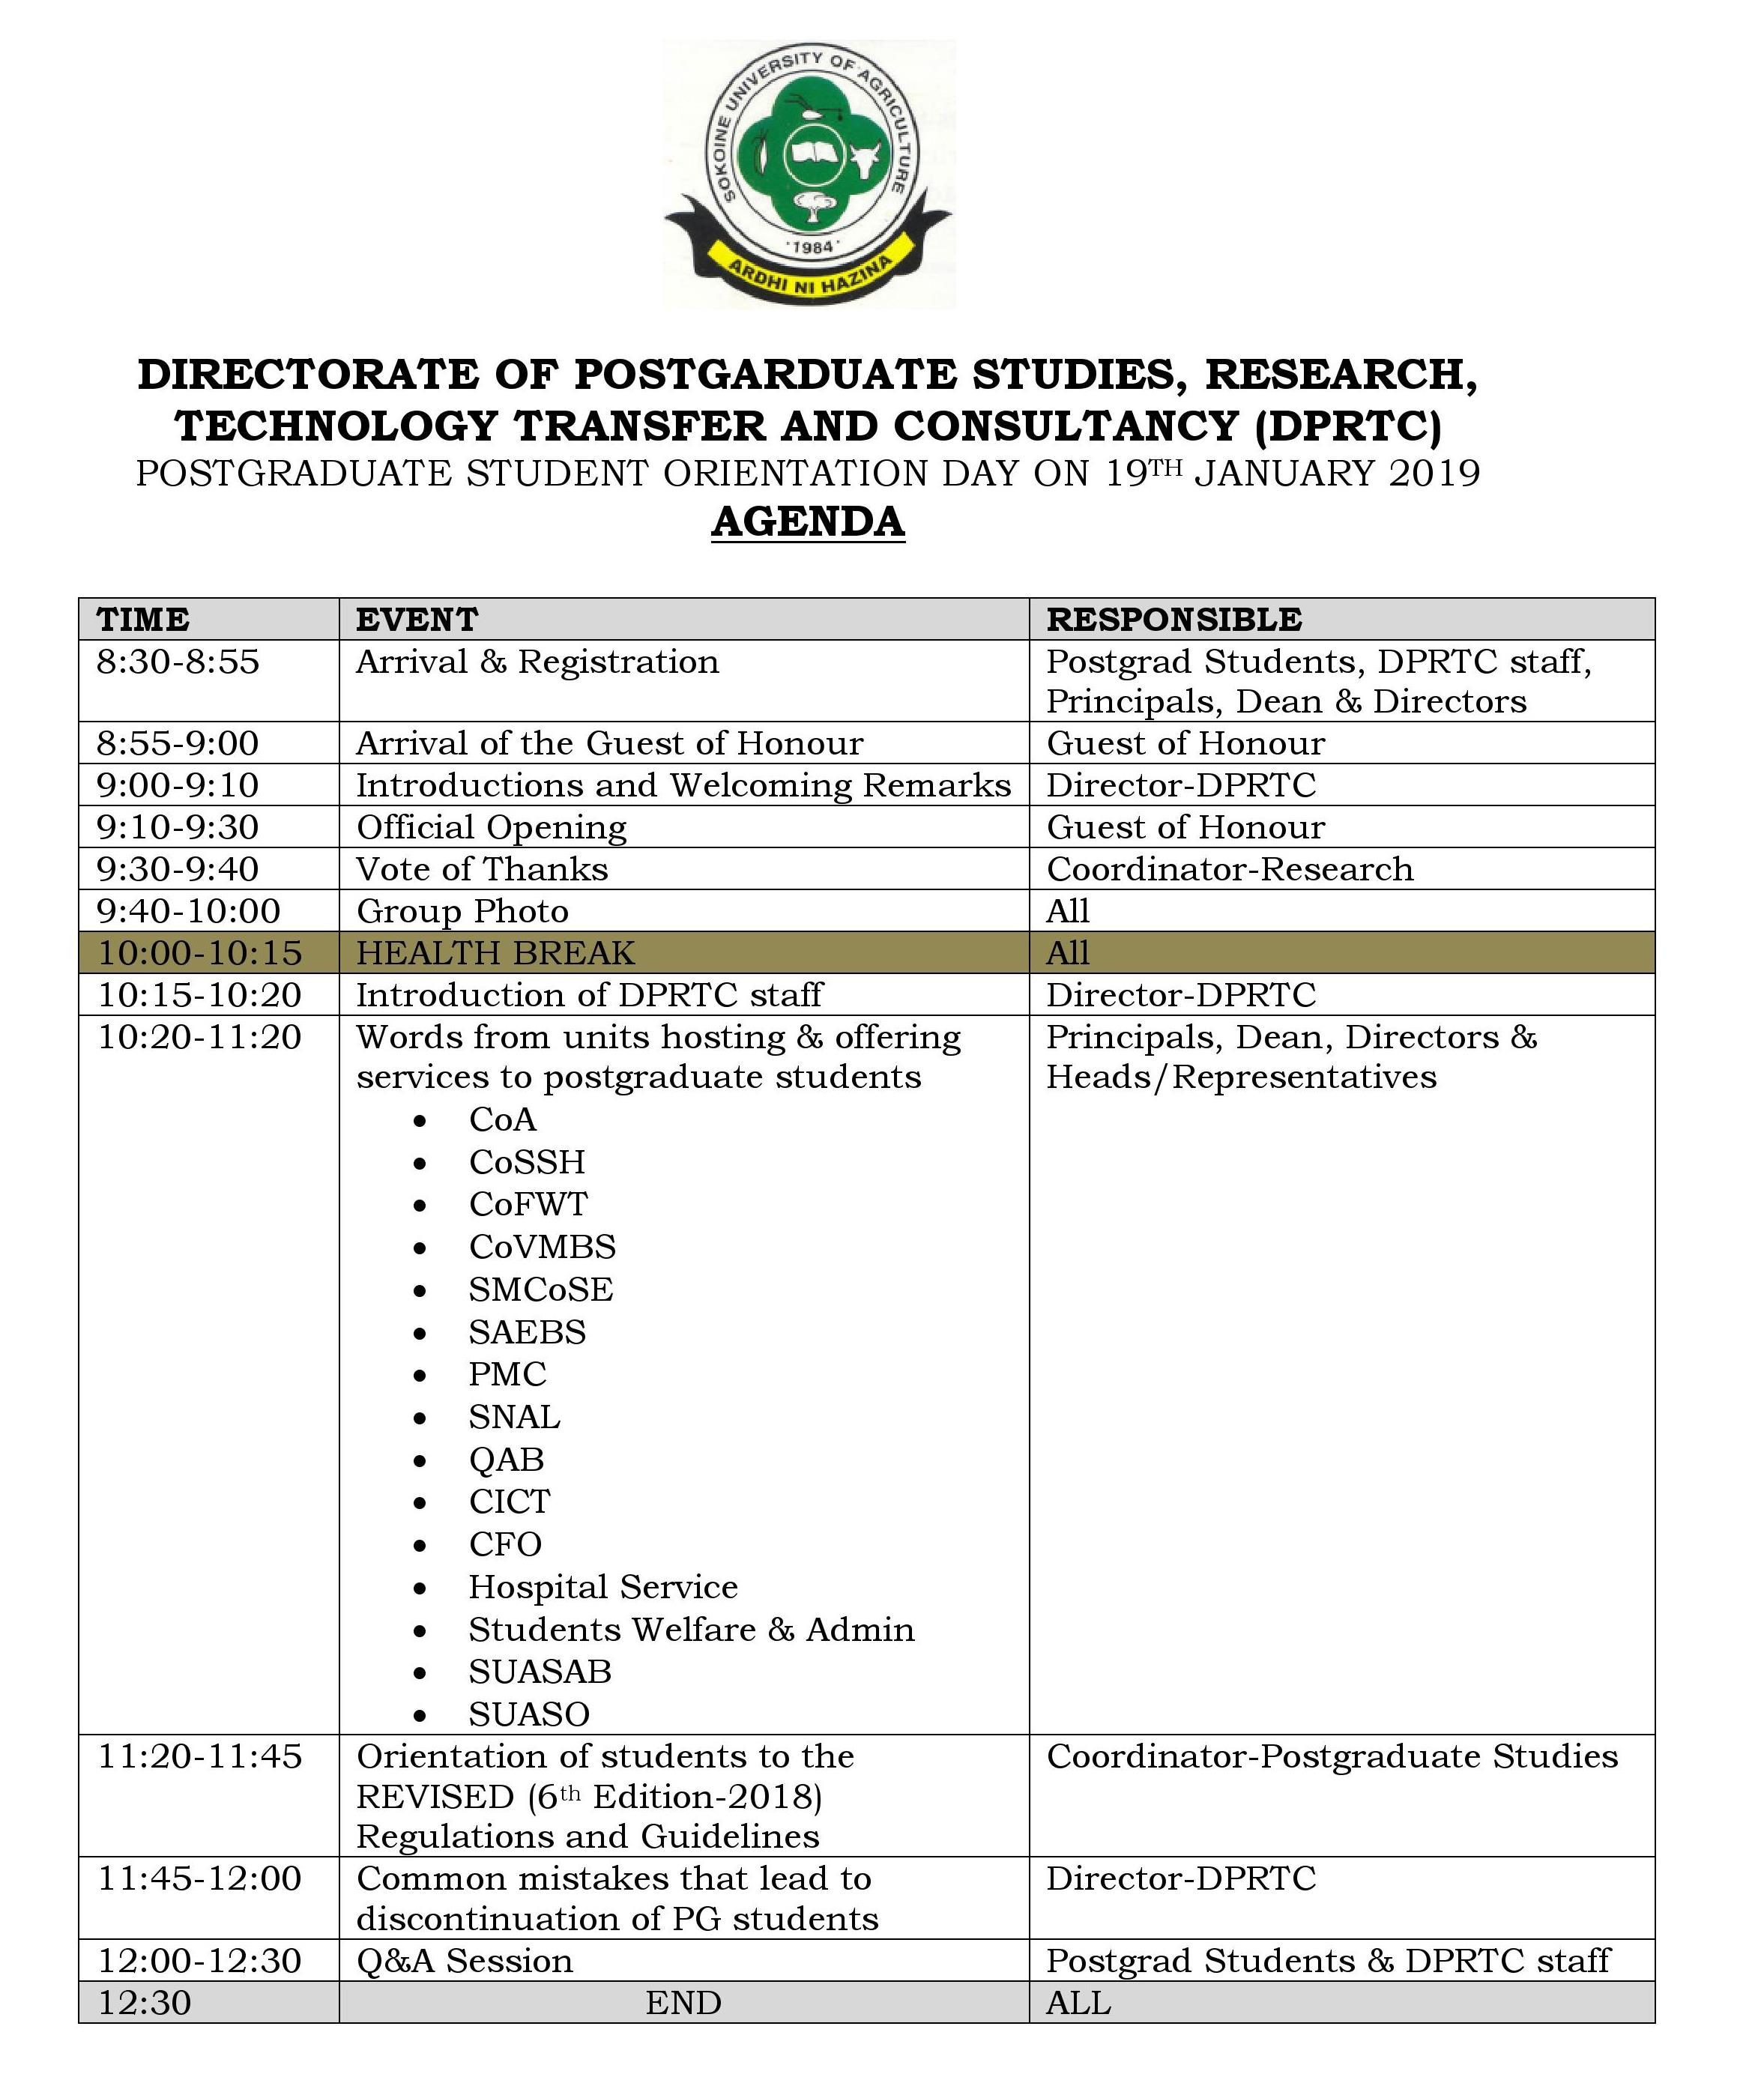 POSTGRADUATE STUDENT ORIENTATION DAY ON 19TH JANUARY 2019